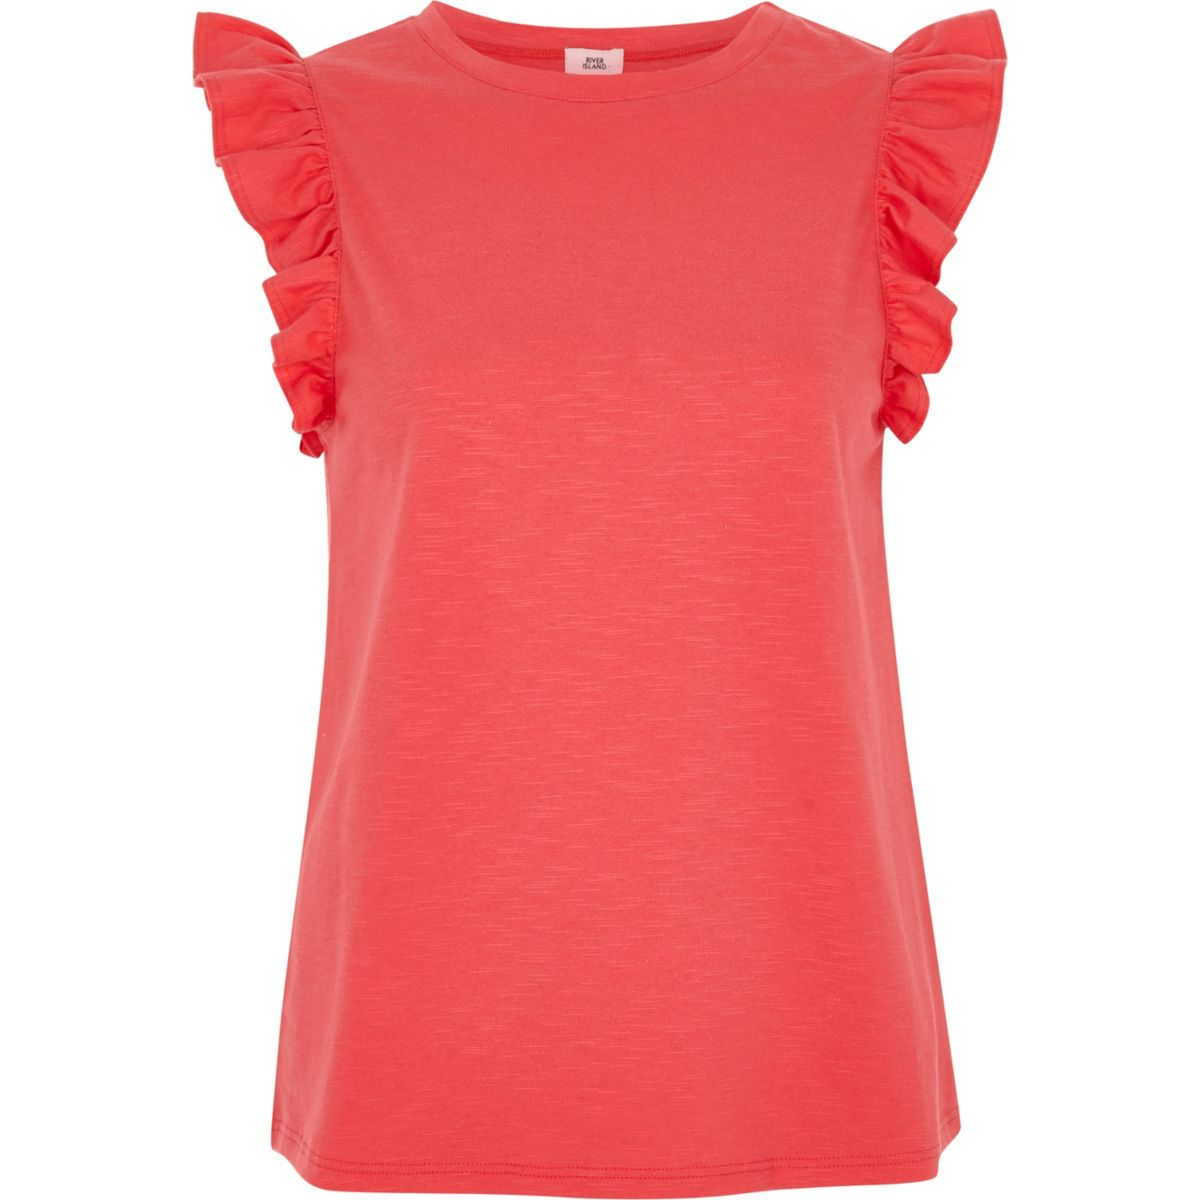 Bright pink frill sleeve tank top